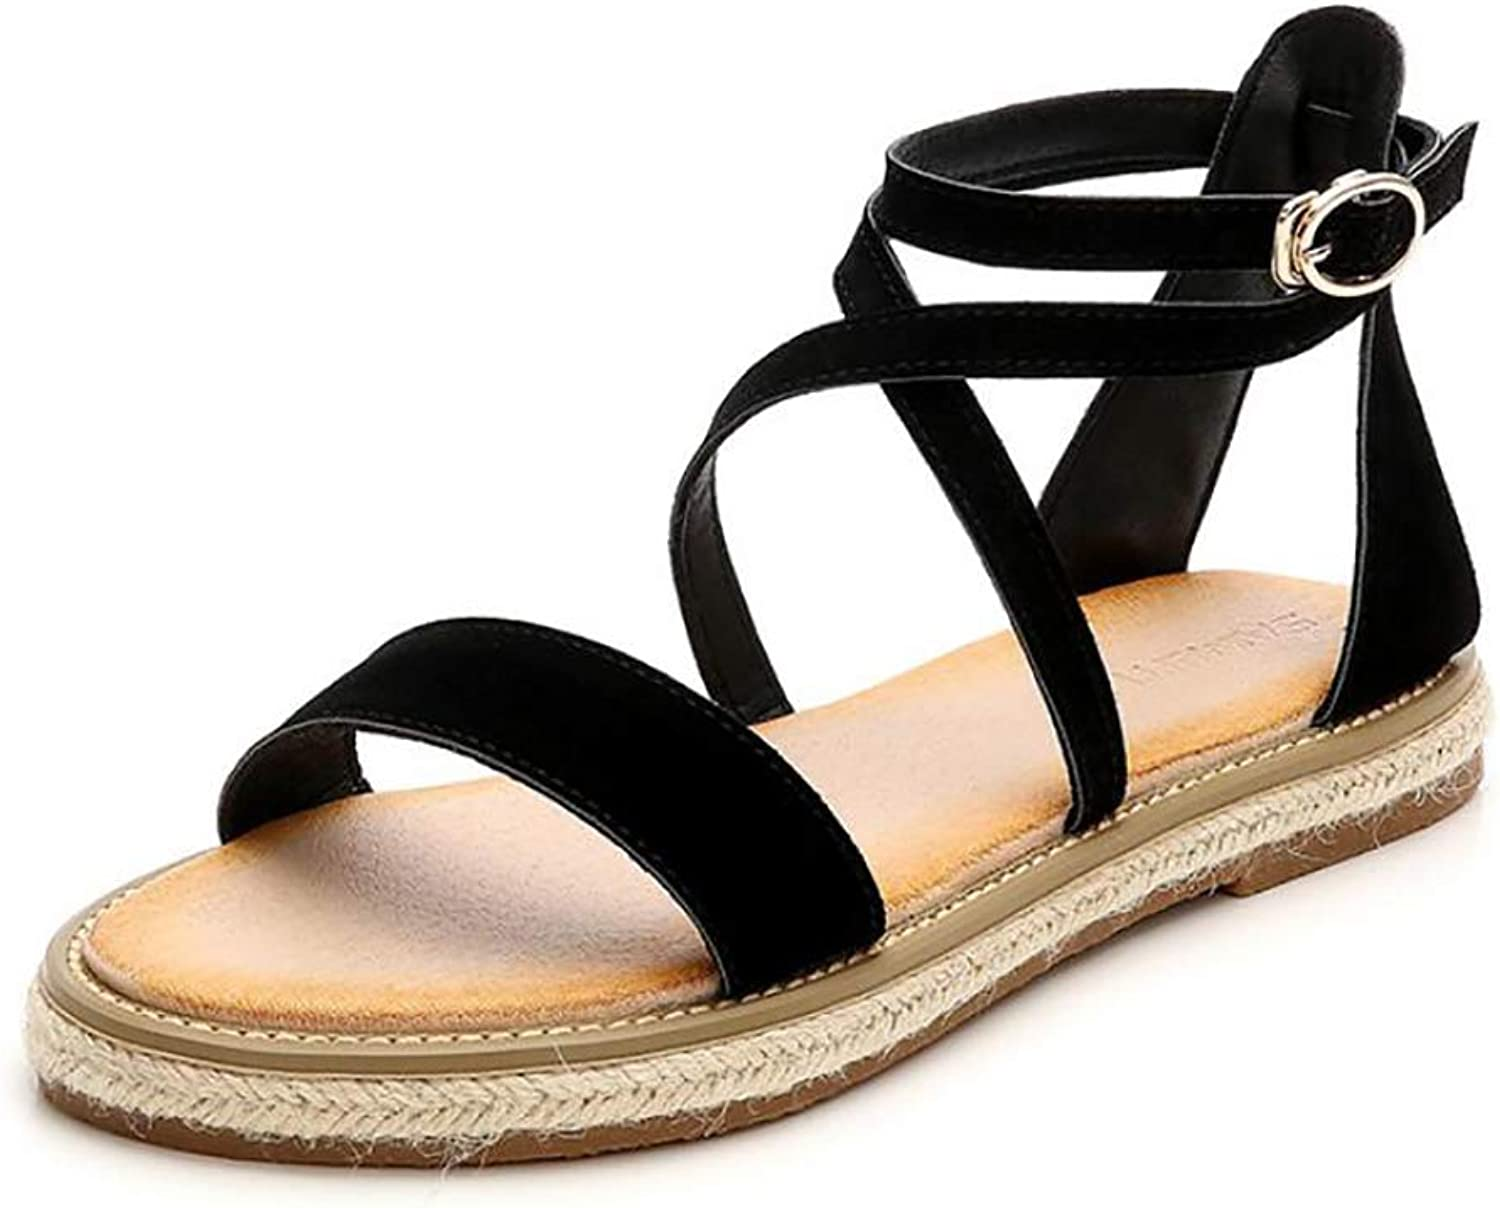 Bohemia Simple Flat Sandals Slippers Fashion Casual Cross Strap Buckle Non-Slip Beach Wedding Flip-Flops,Black,40